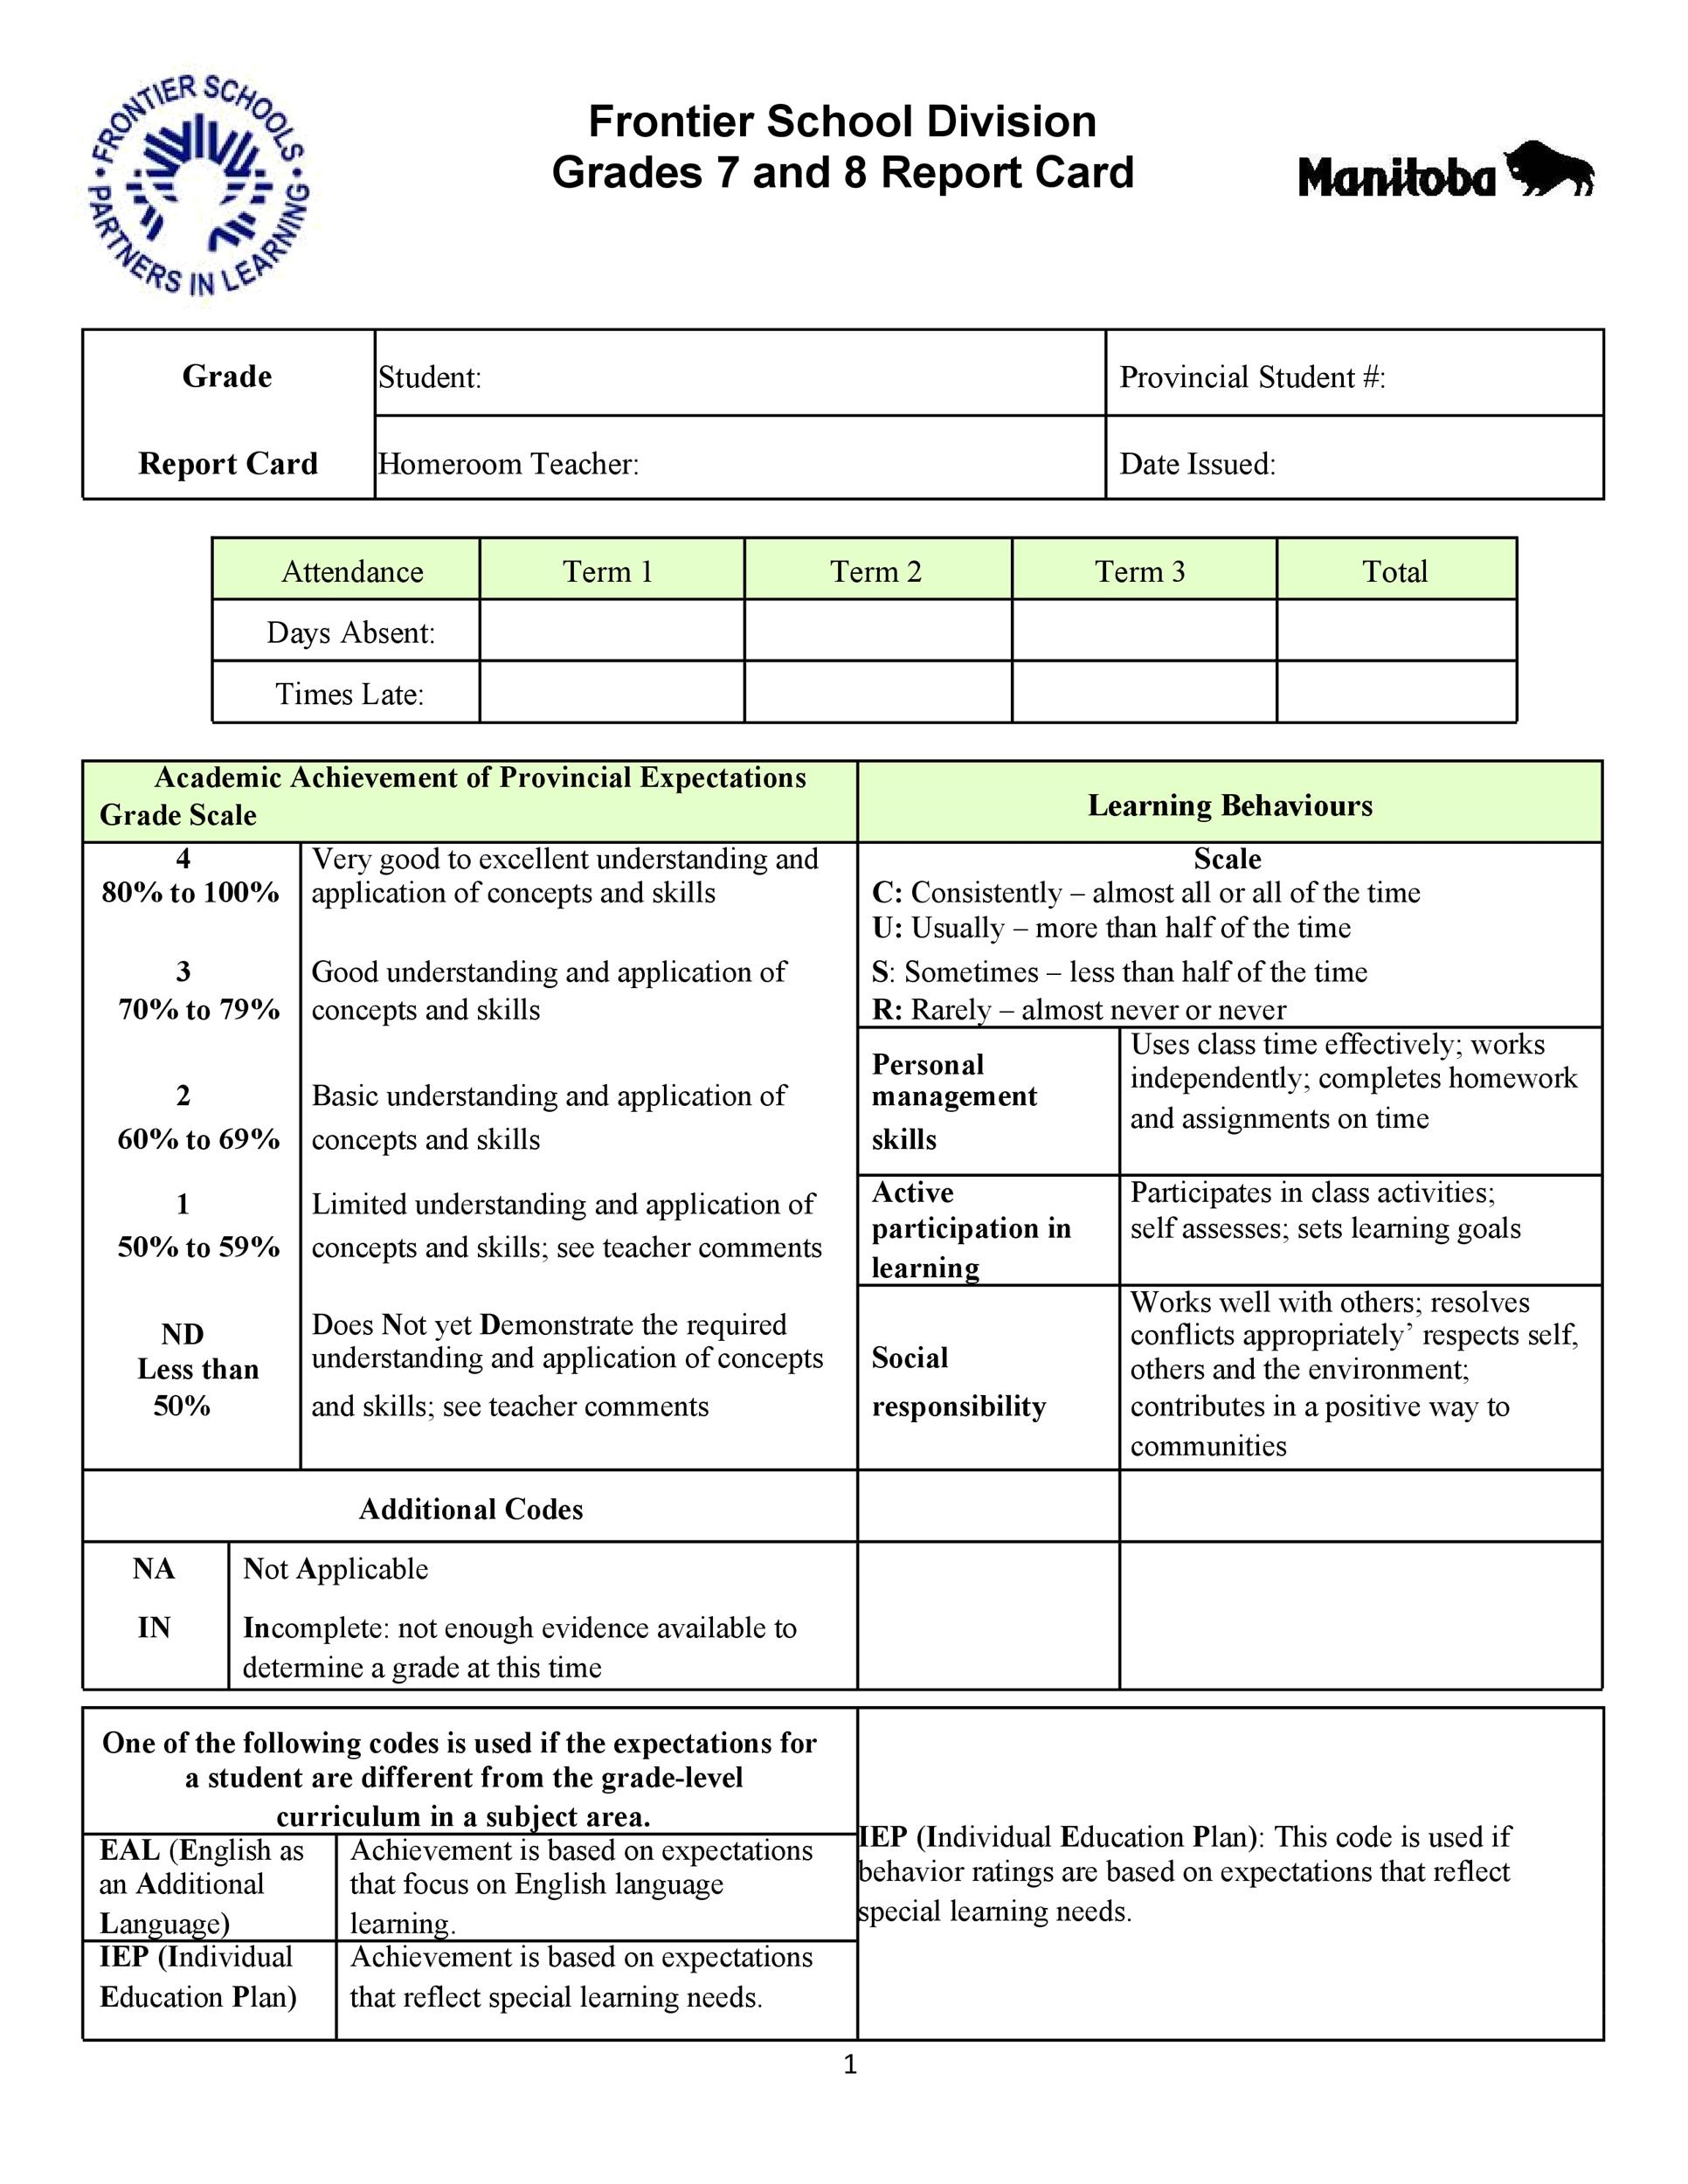 4+ Real & Fake Report Card Templates [Homeschool, High School]